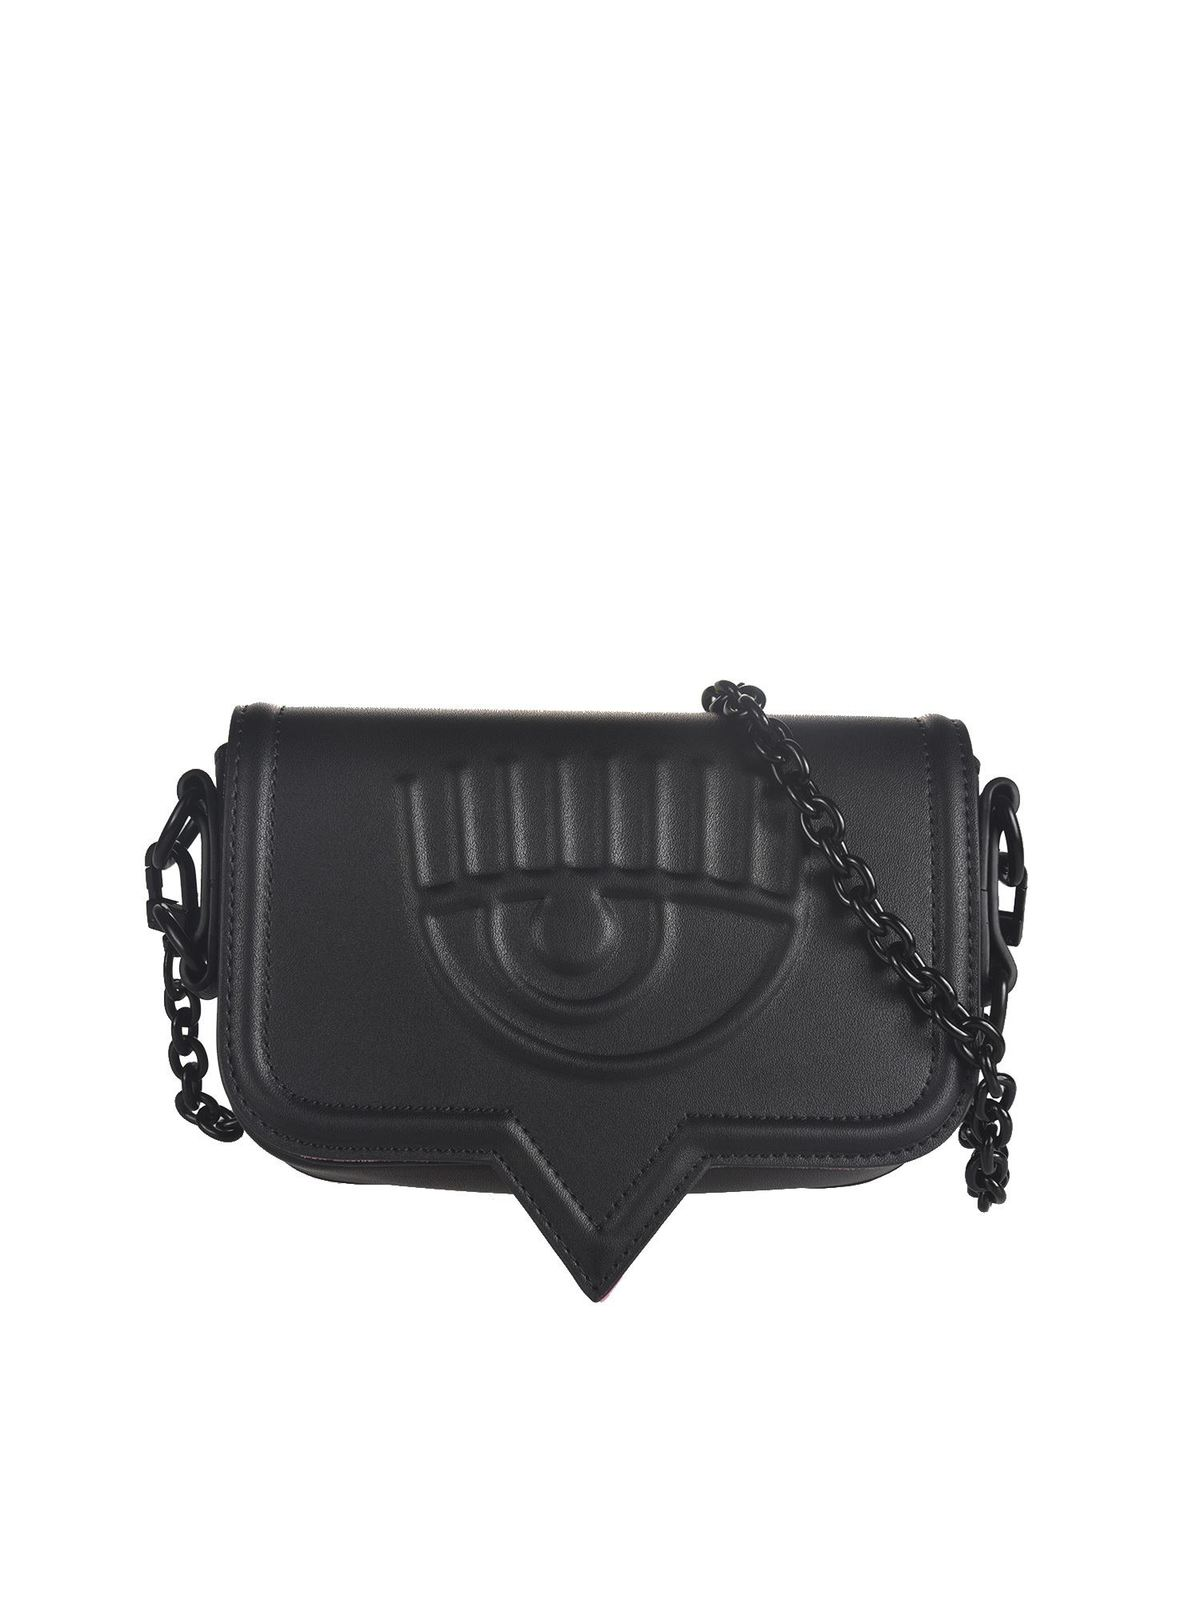 Chiara Ferragni EYELIKE SMALL SHOULDER BAG IN BLACK